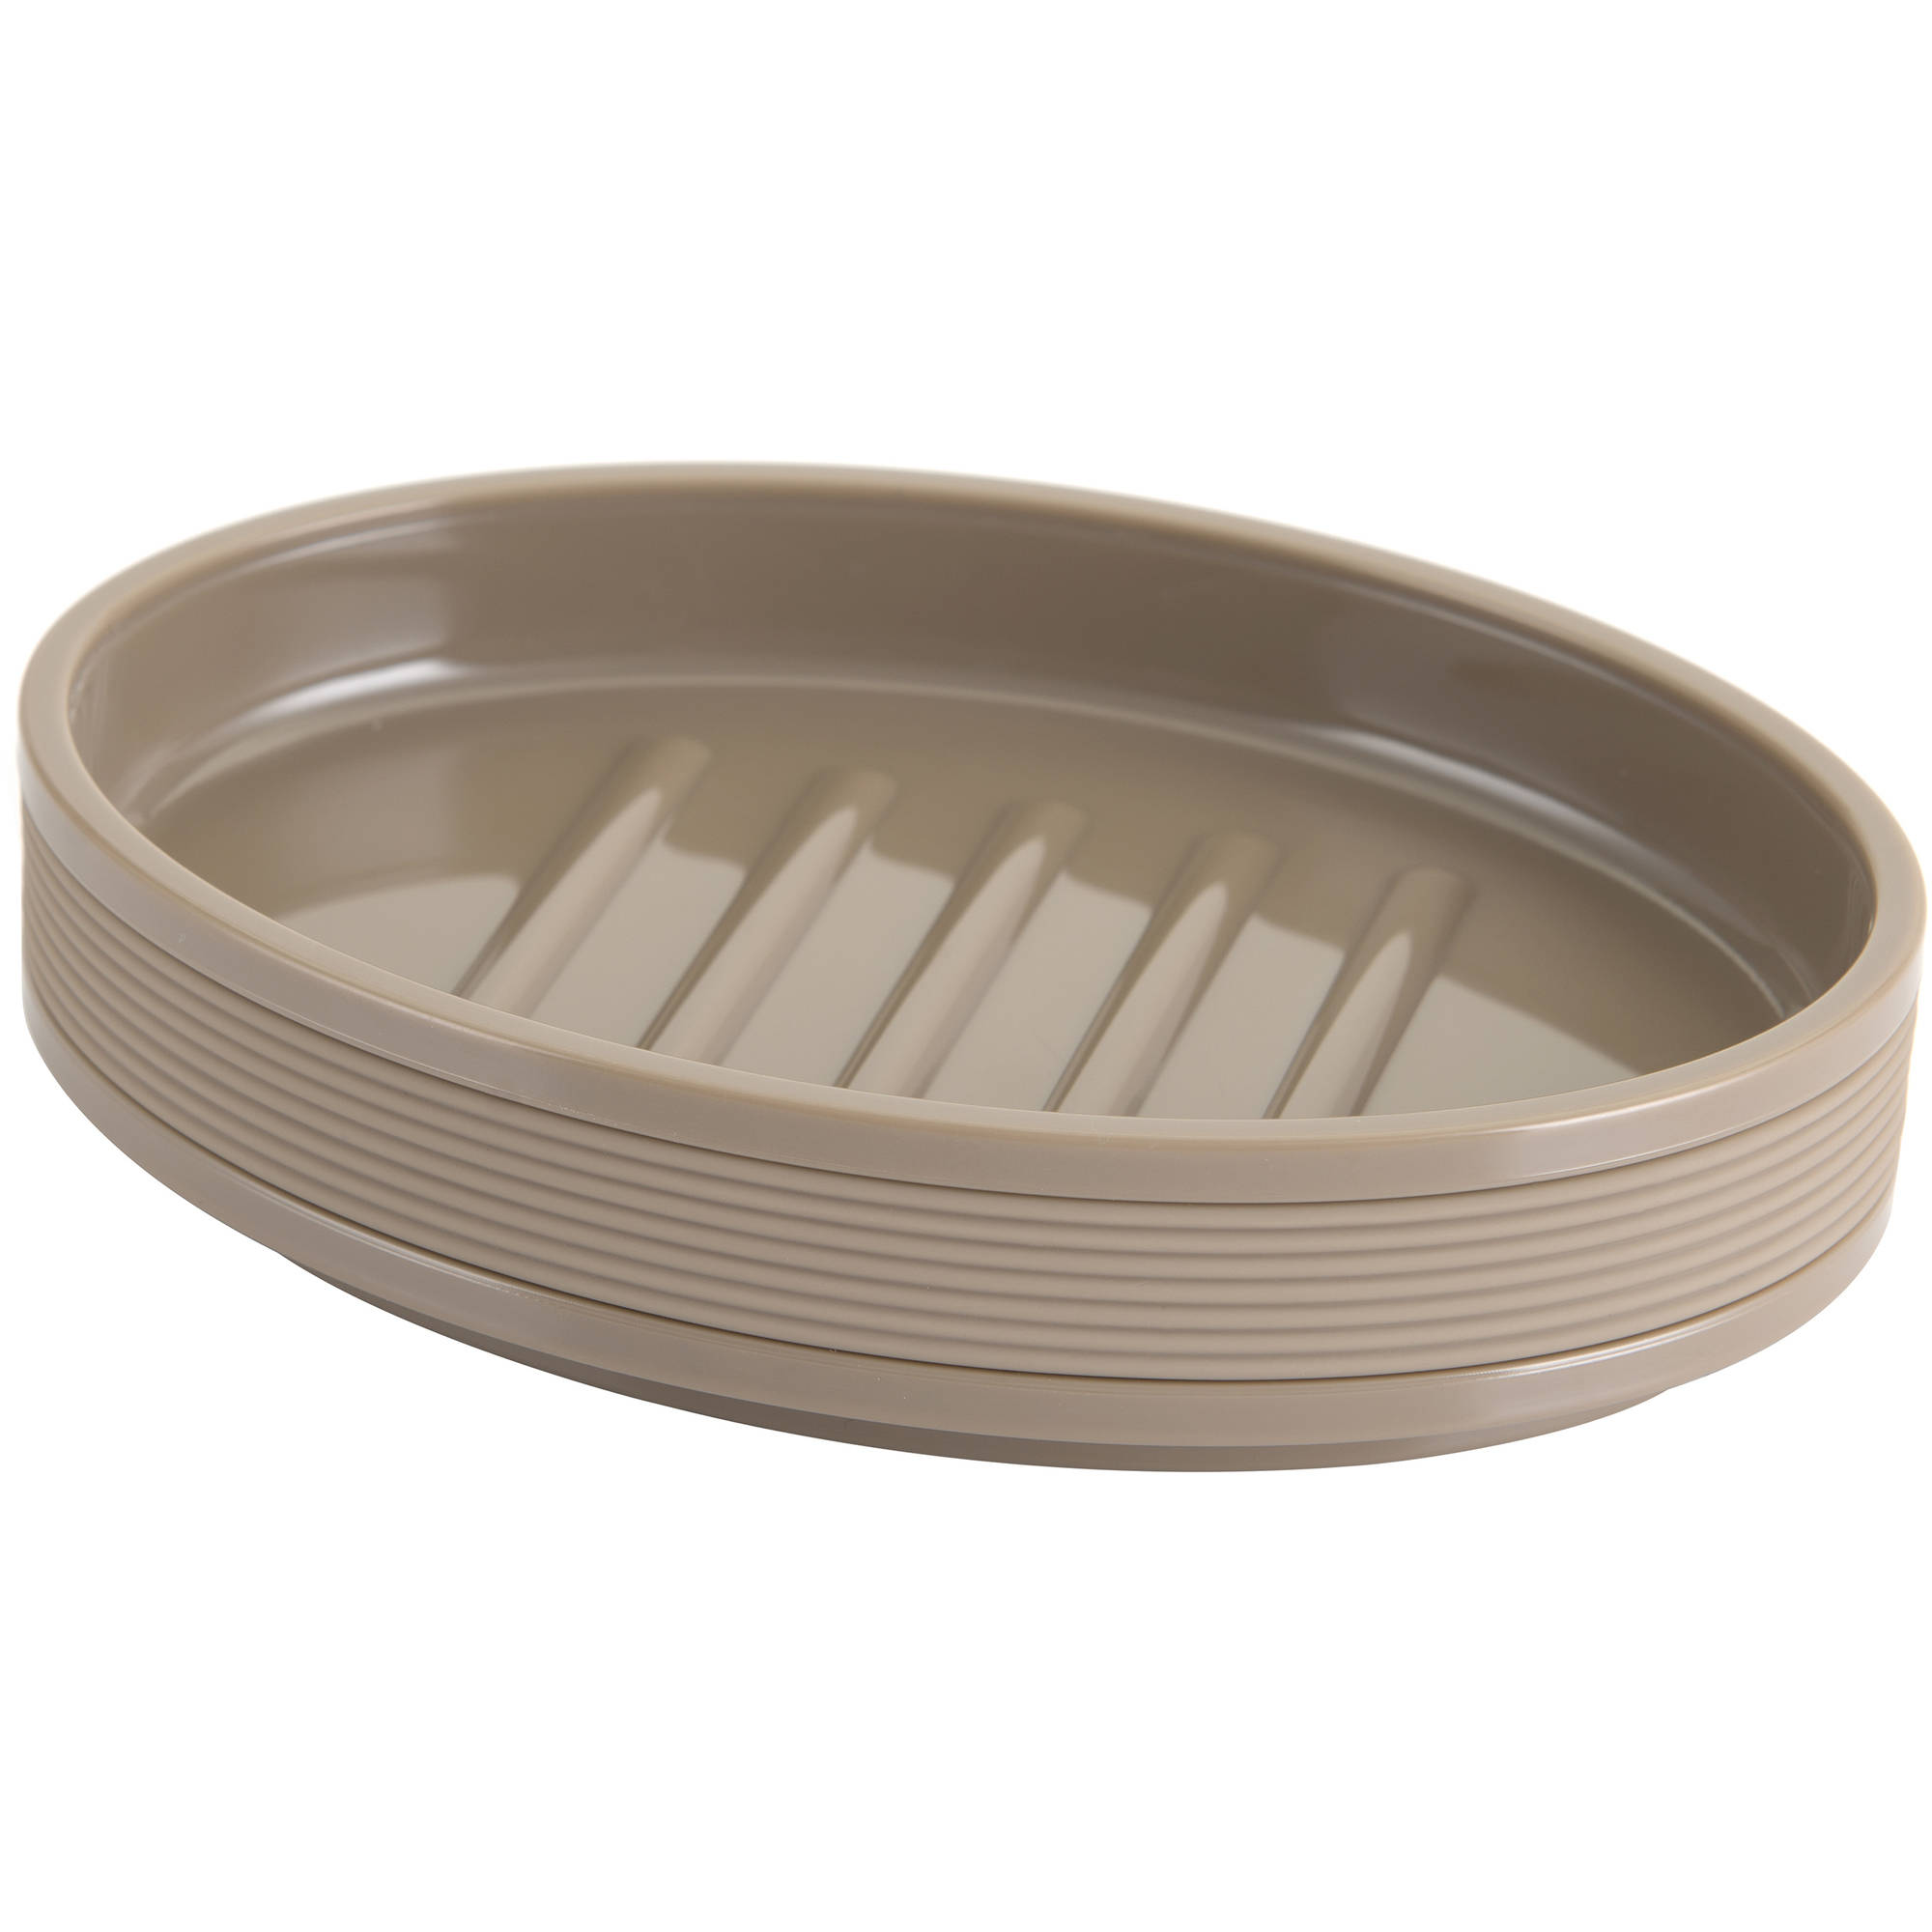 Mainstays Soft Touch White Soap Dish, 1 Each